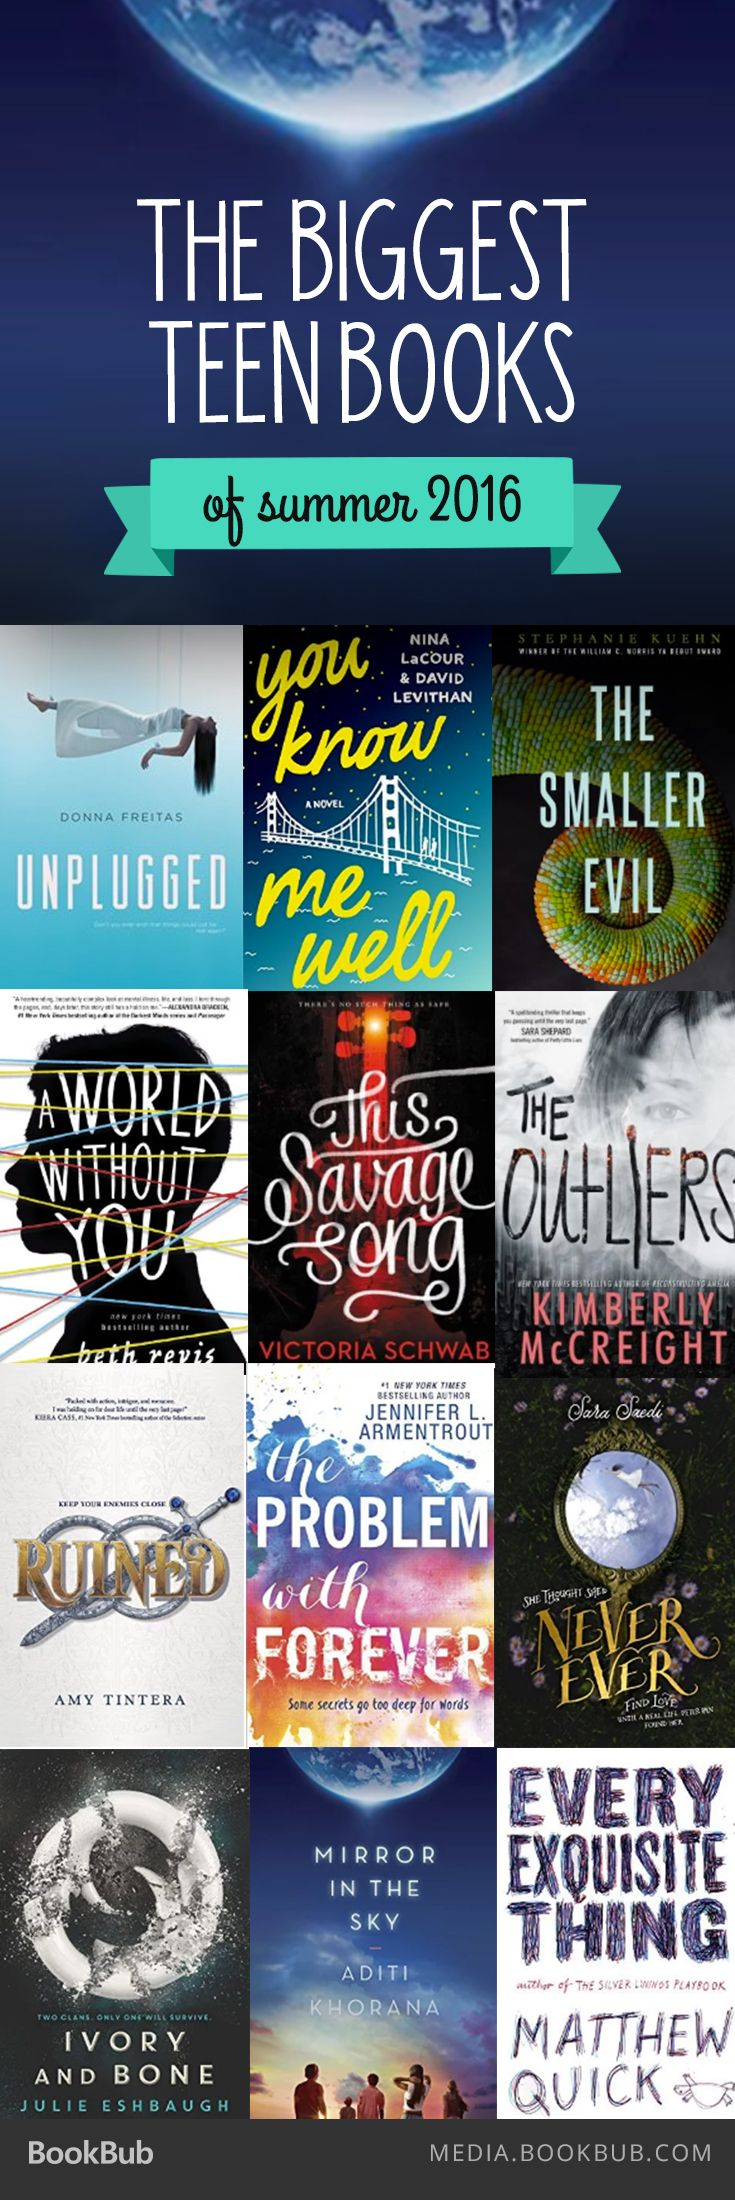 Check out the biggest teen books of summer 2016, including dystopian stories…